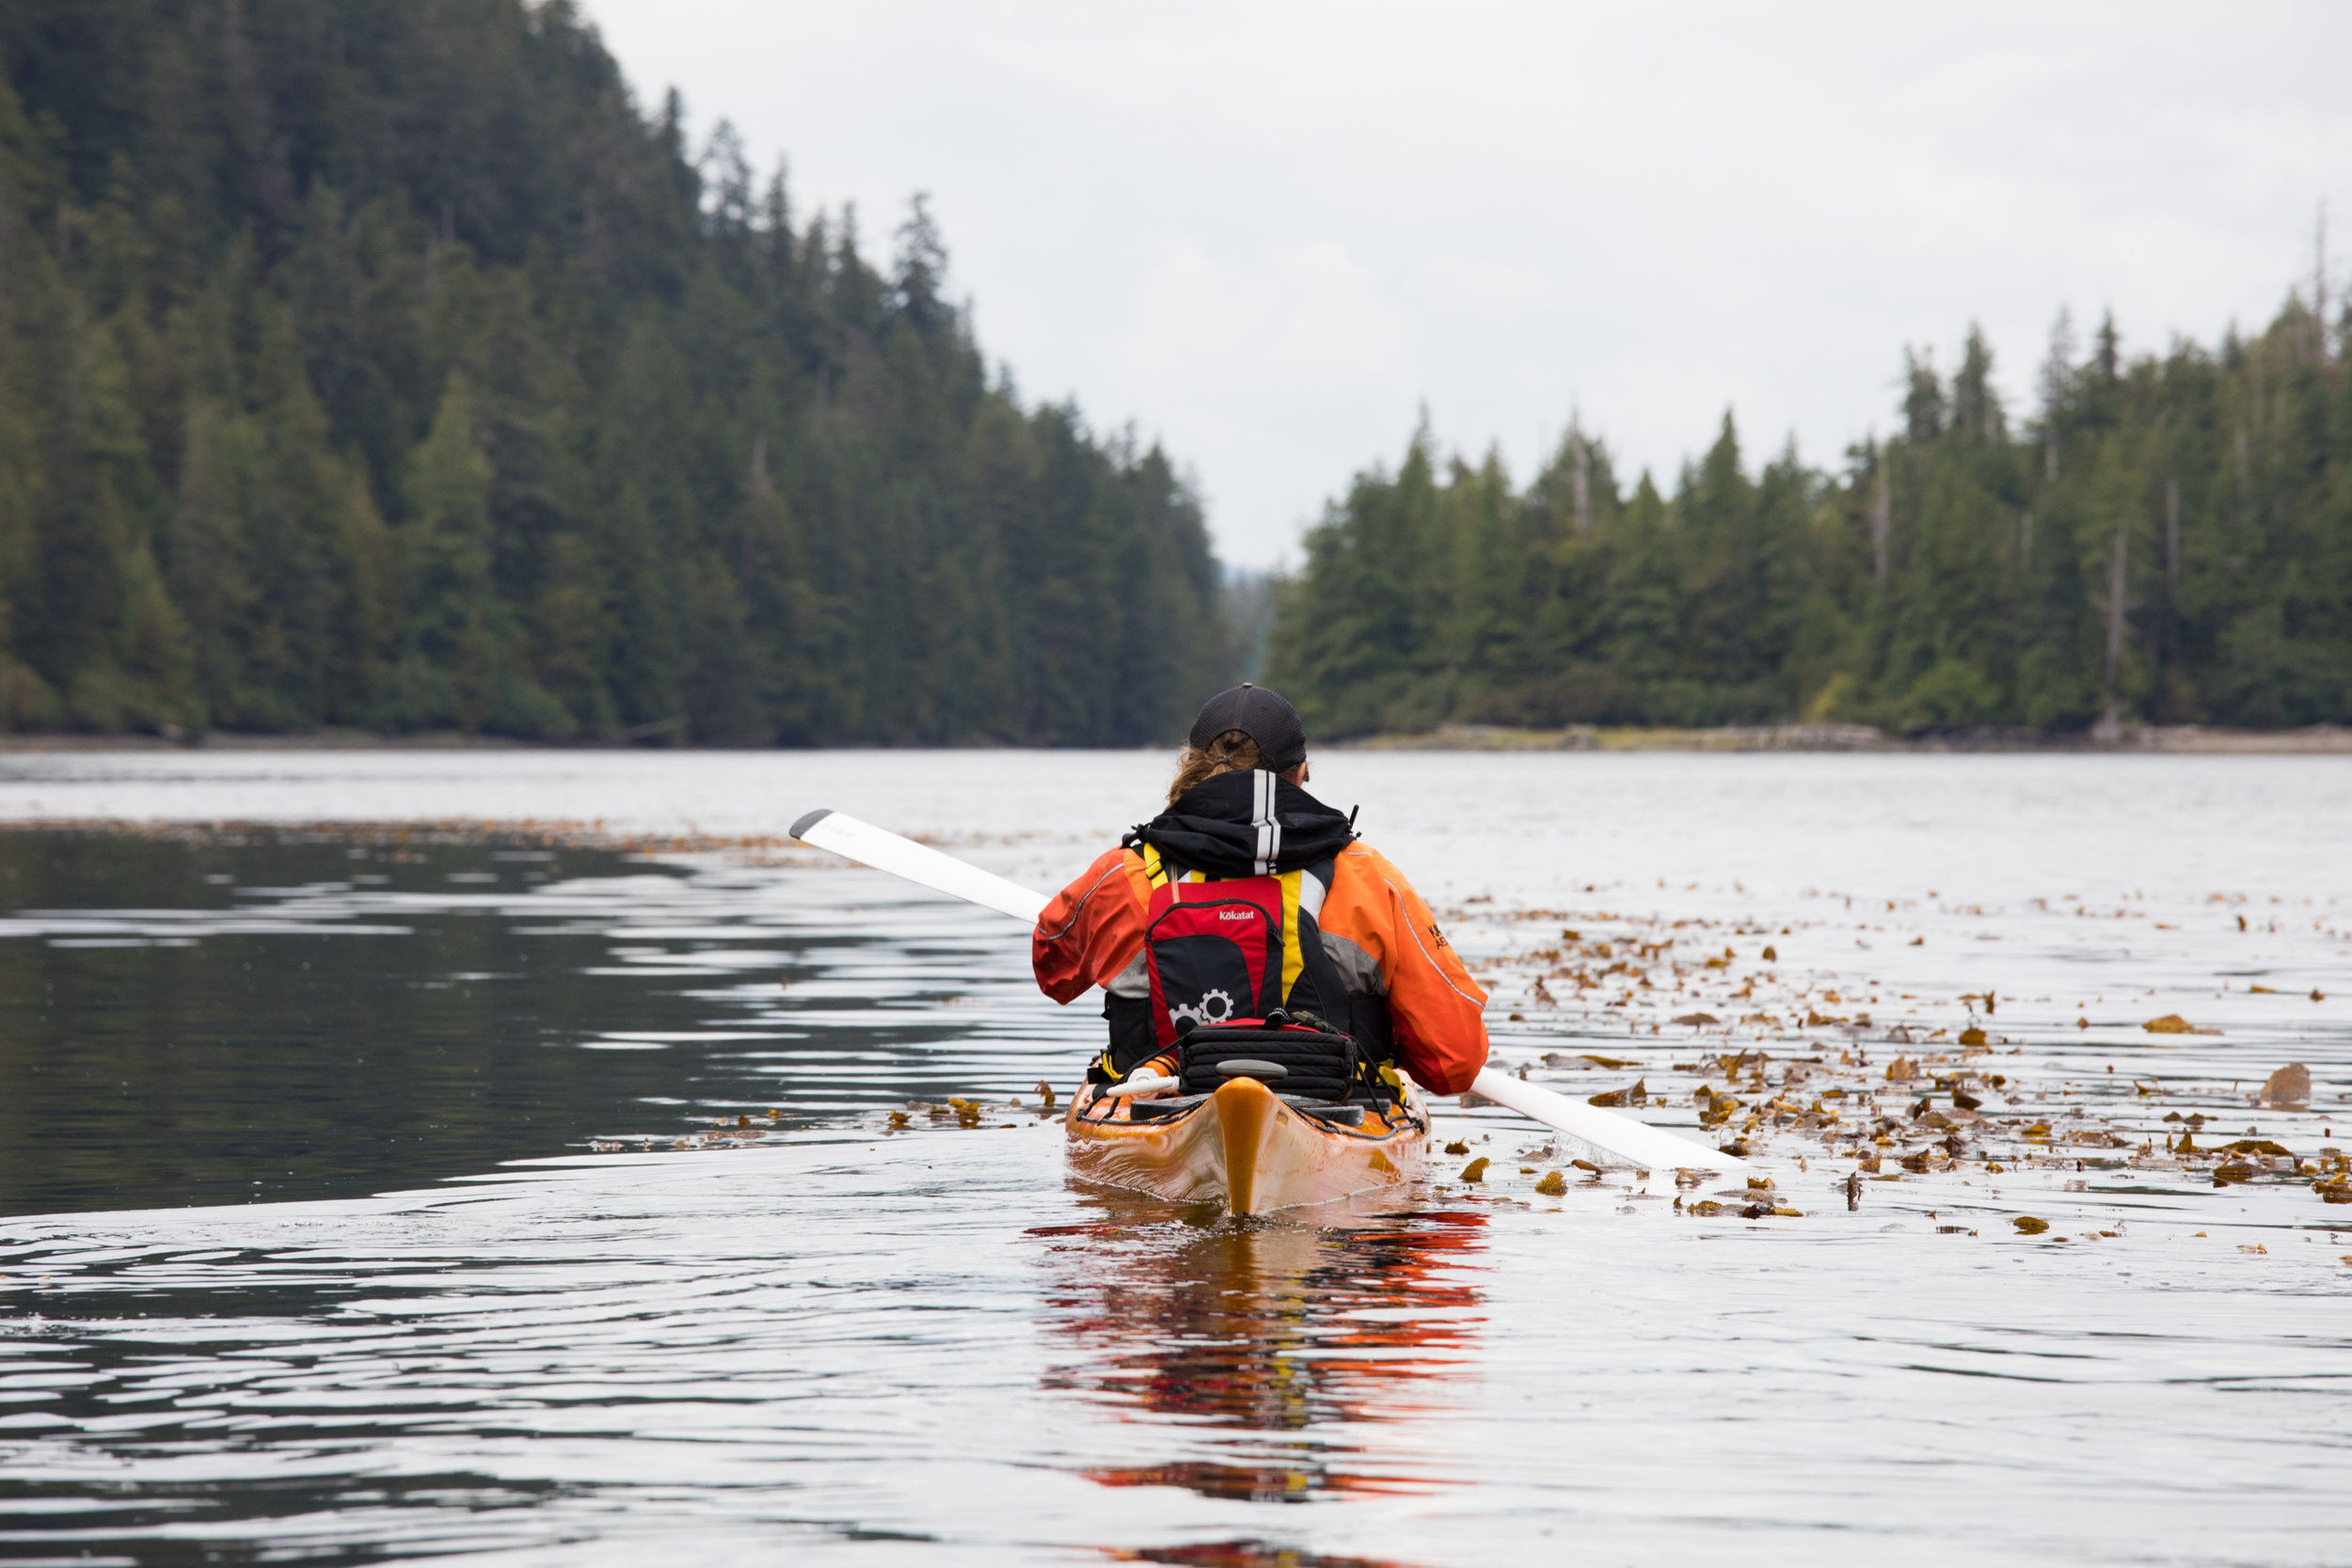 Aaron paddling towards the narrows between Sukkwan Island and Blanket Island.